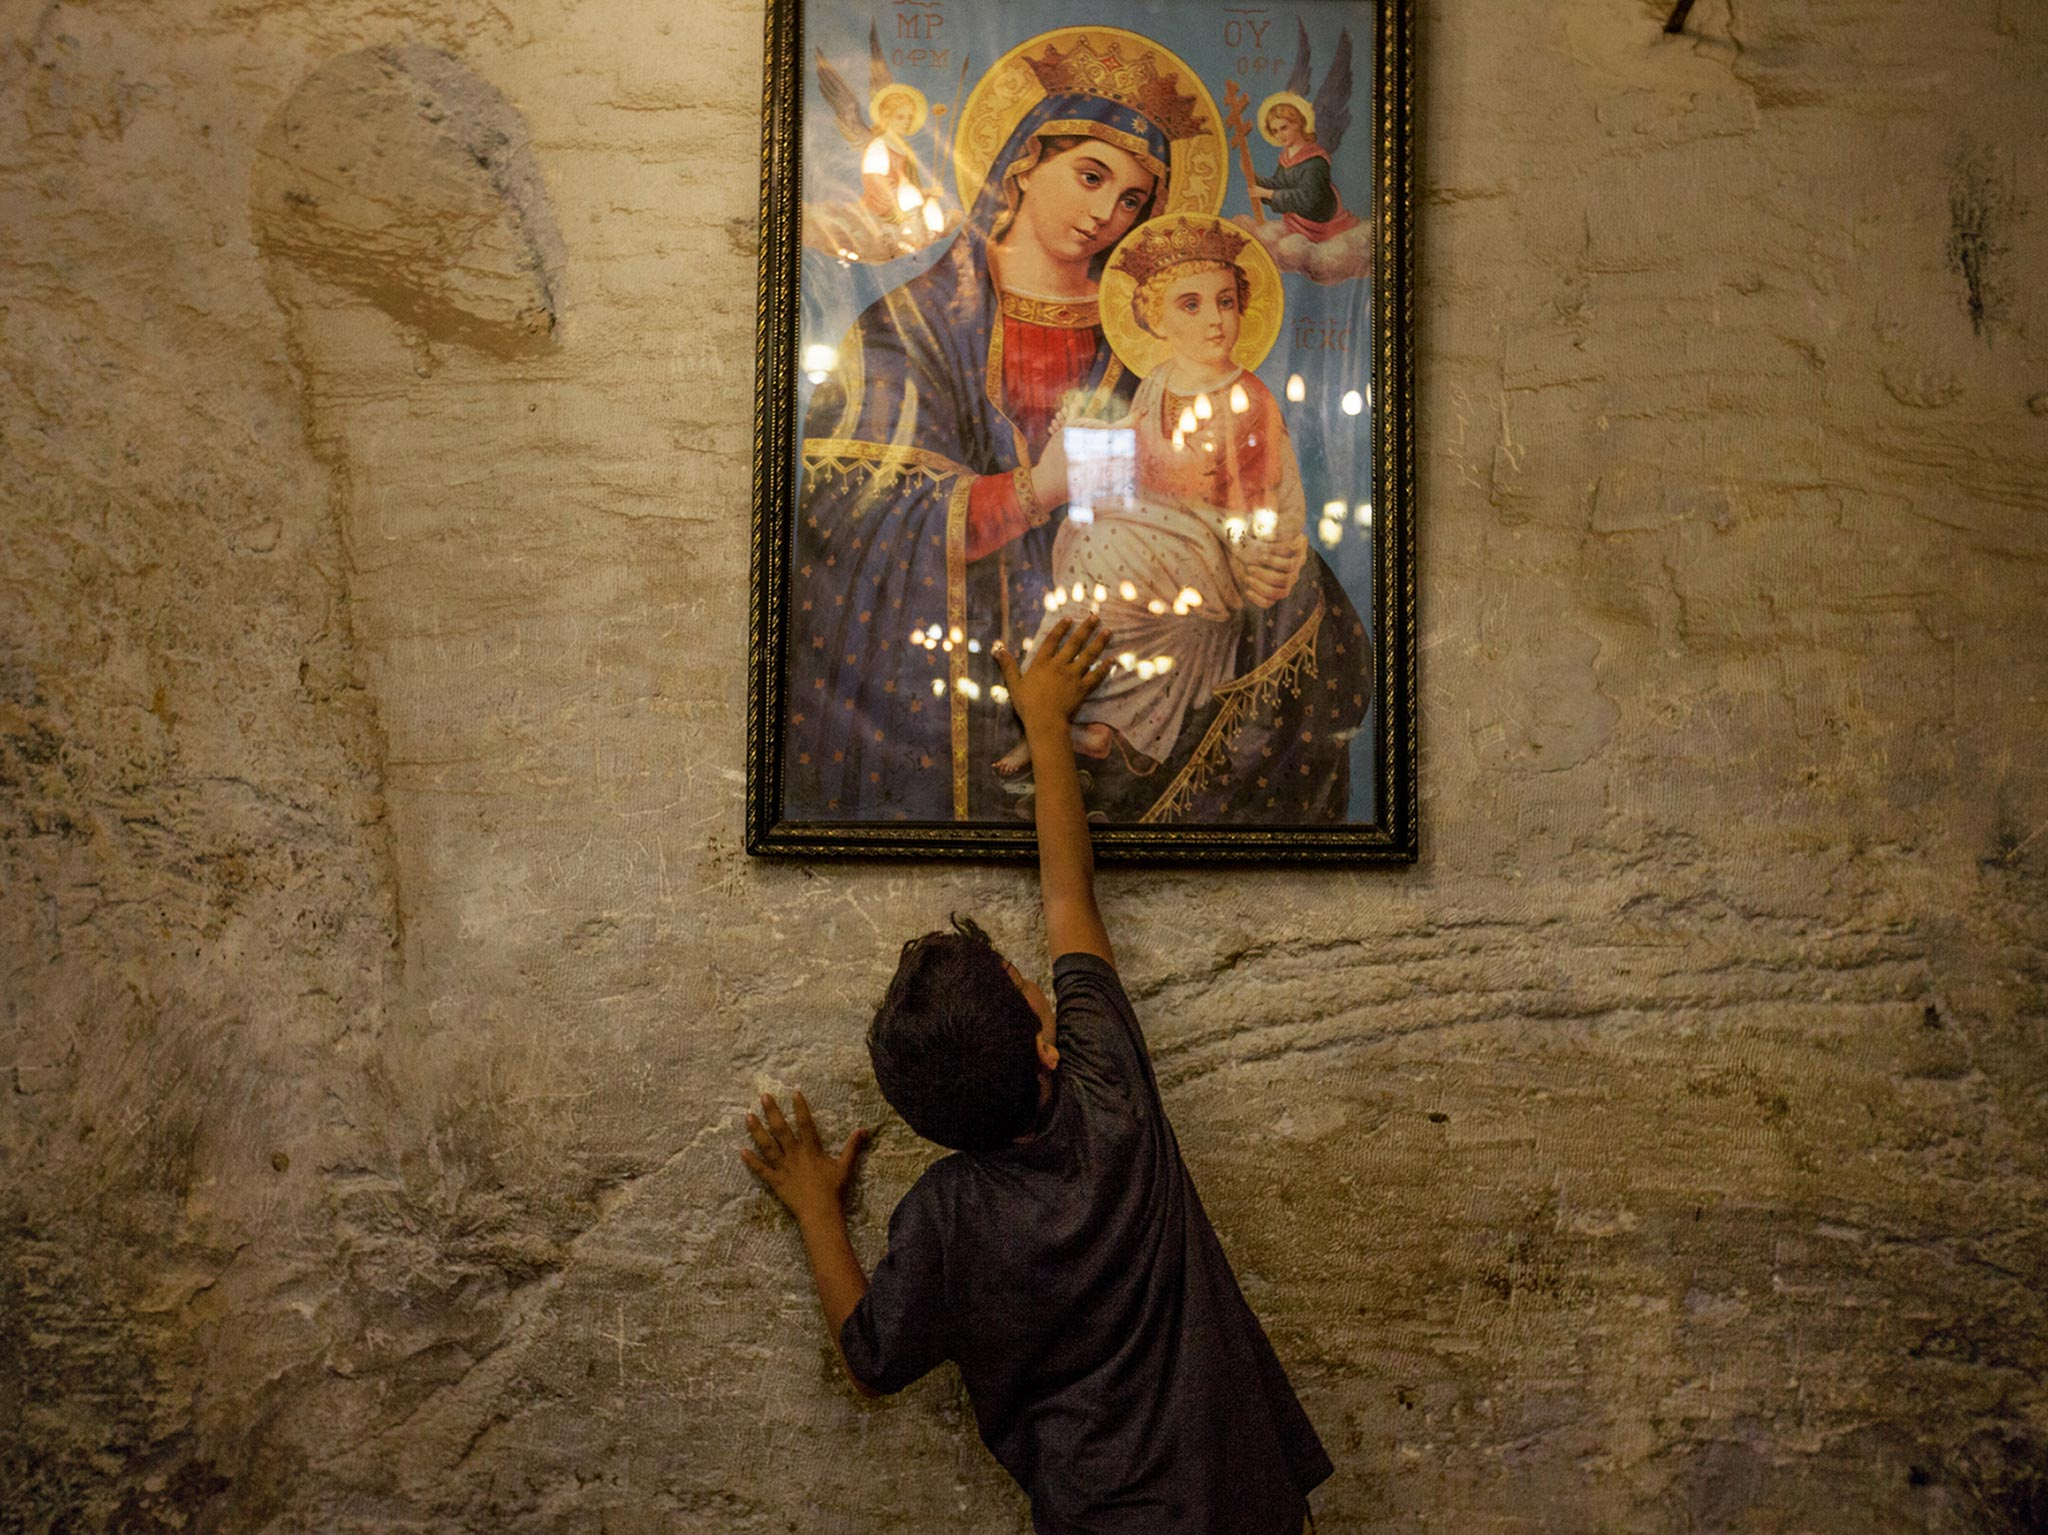 """A young boy in the Deir al Adra monastery reaches up to touch a painted image of Mary. In the Koran, Maryam (Mary) is the holiest woman mentioned. """"So the Virgin Mary is not at all strange to Muslims,"""" says Roten. """"In fact, wherever there is a connection between Christians and Muslims—or any two groups that know and love her—there is a common value in the covenant mother."""""""